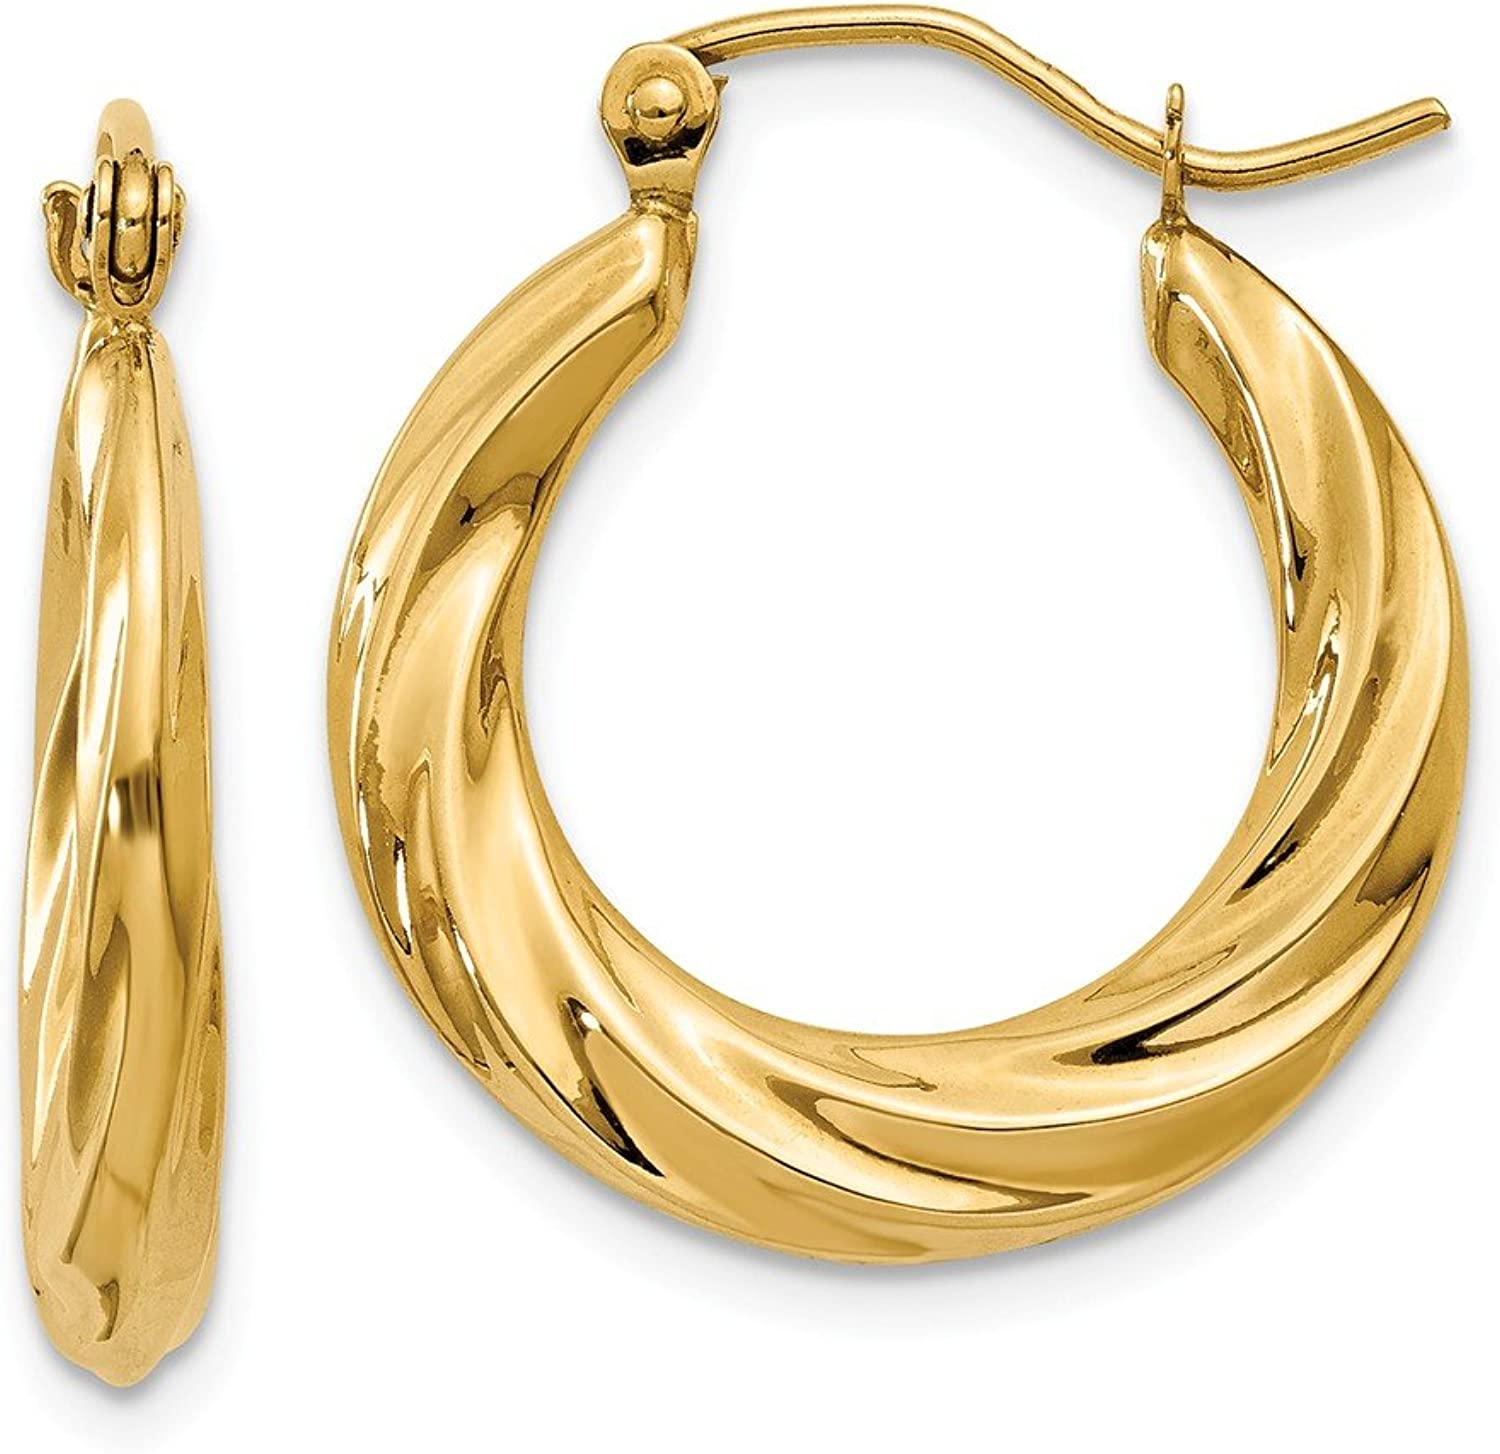 Beautiful Yellow gold 14K Yellowgold 14k Polished Twisted Hollow Hoop Earrings